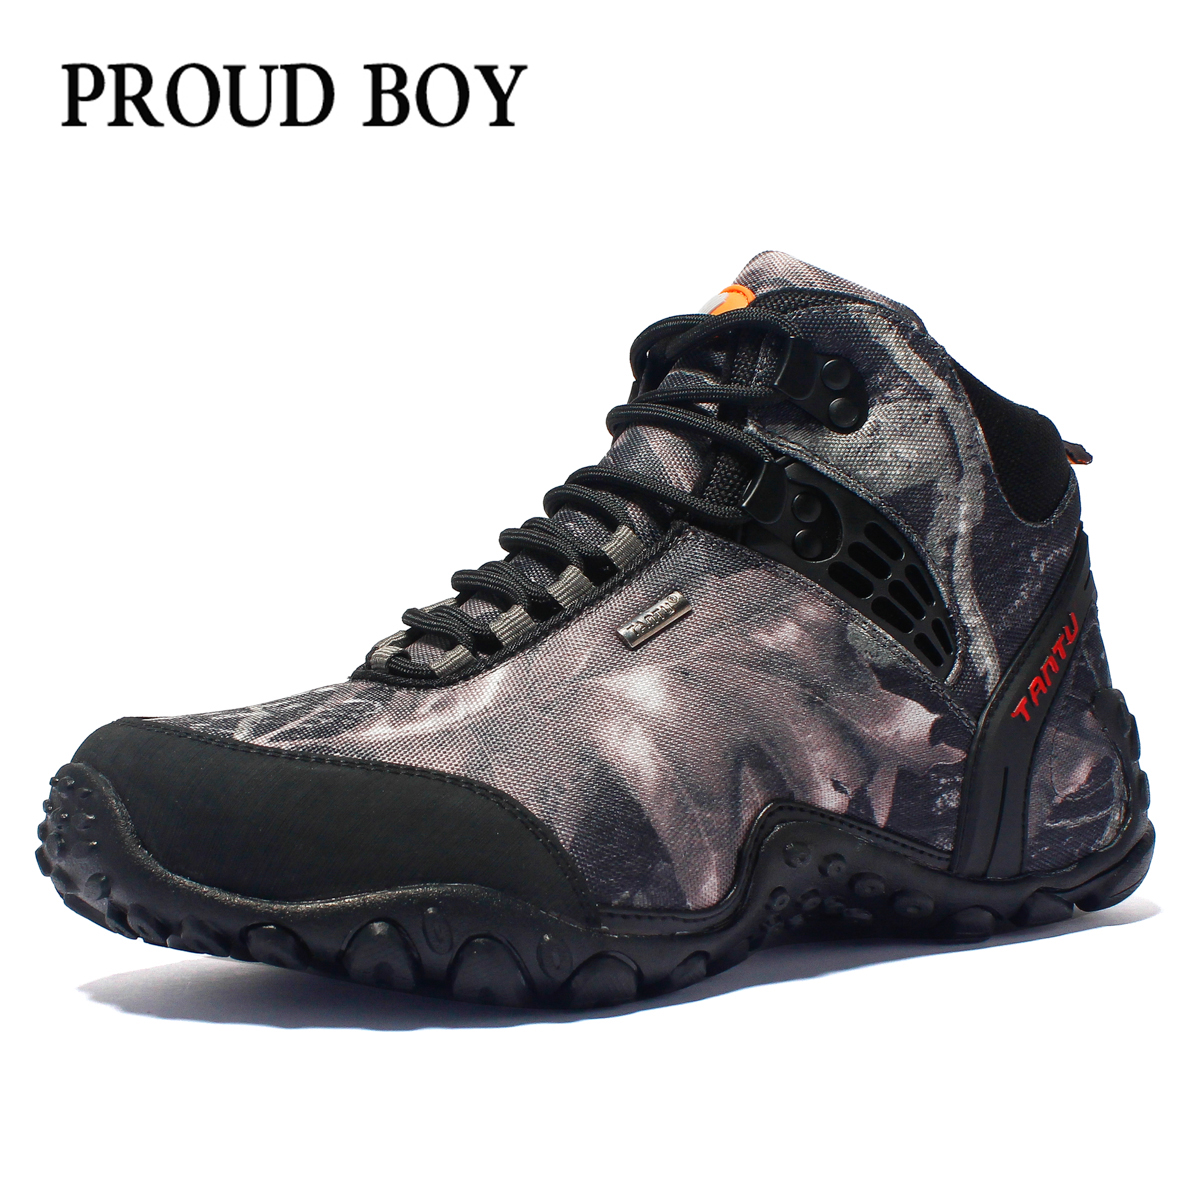 Outdoor Sports Camping Hiking Shoes for men Breathable Waterproof sediment prevention Camouflage Military Hunting Tactical Boots 2016 sale professional men s boots camouflage military boot waterproof hunting hiking shoes size euro 39 44 bo01